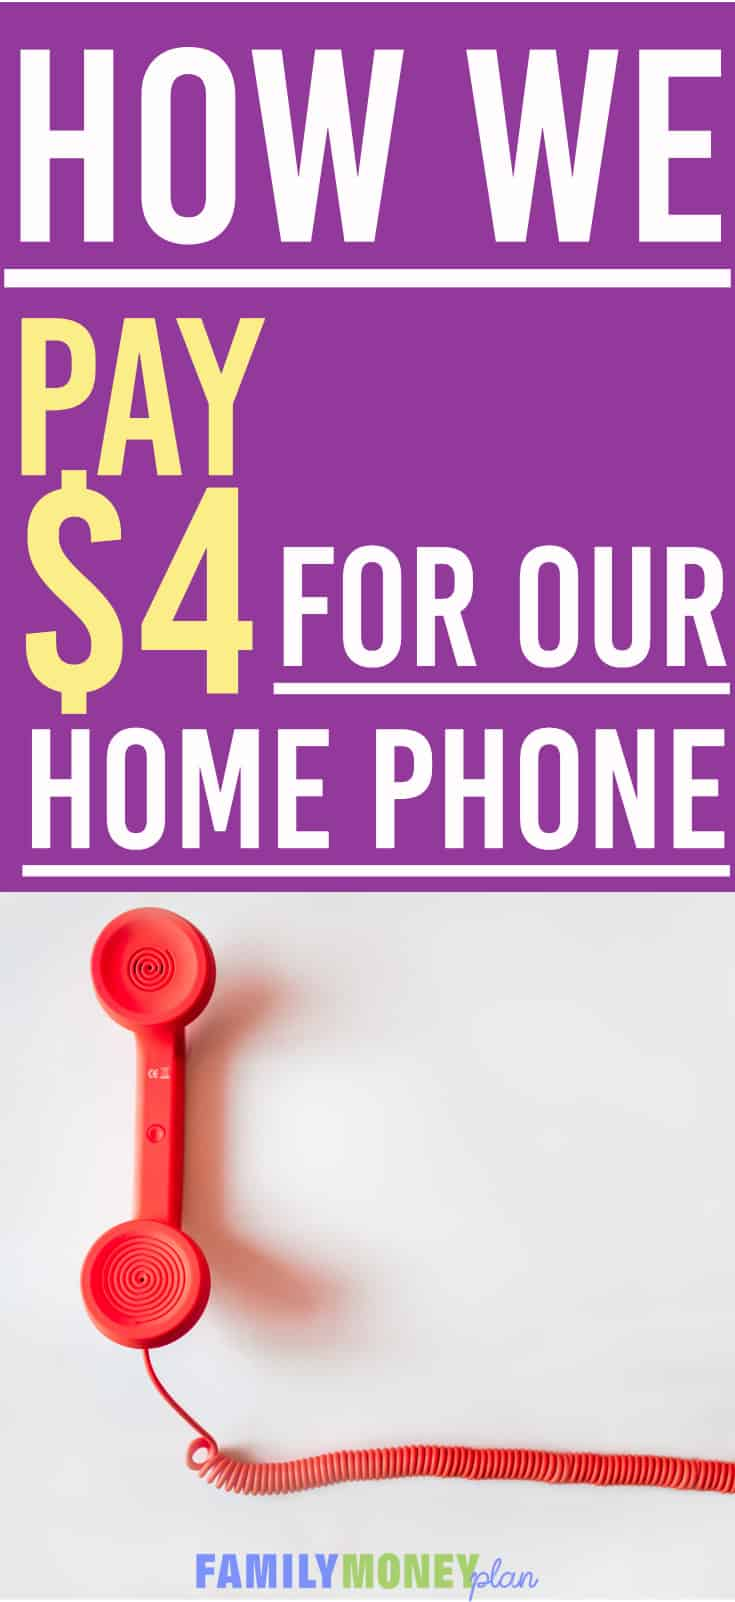 How We Lowered Our Home Phone Costs to $4 a Month. Want to save money on your home phone? Here is how we cut our phone costs by 80%Save money on your home phone | Save on Long Distance Calling | Free home phone line | Saving Money |